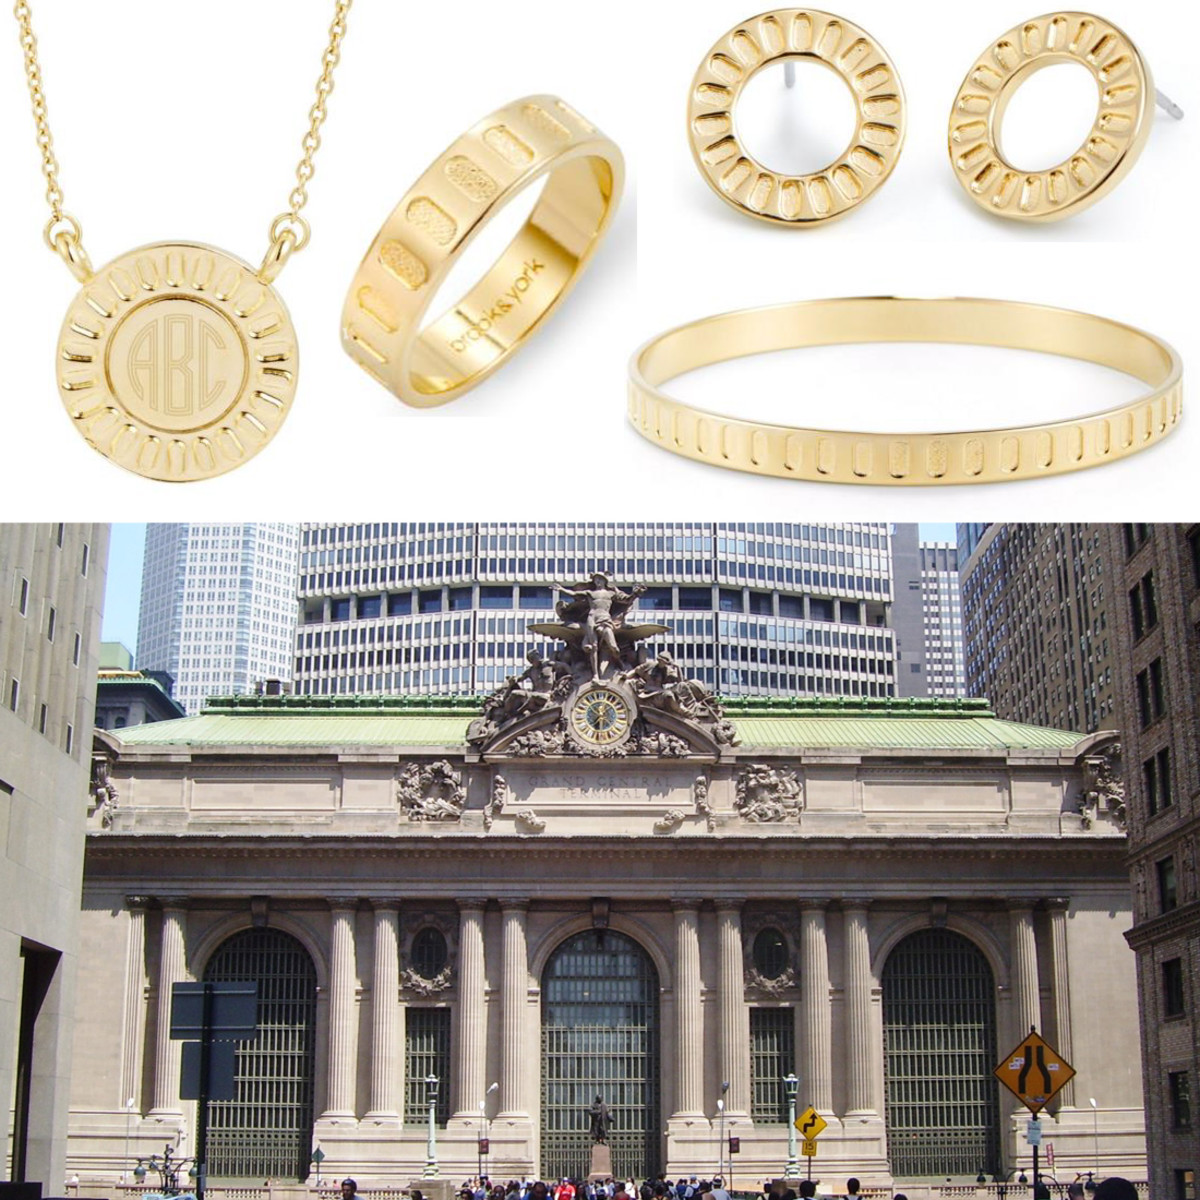 brook & york: inspired by Grand Central Station